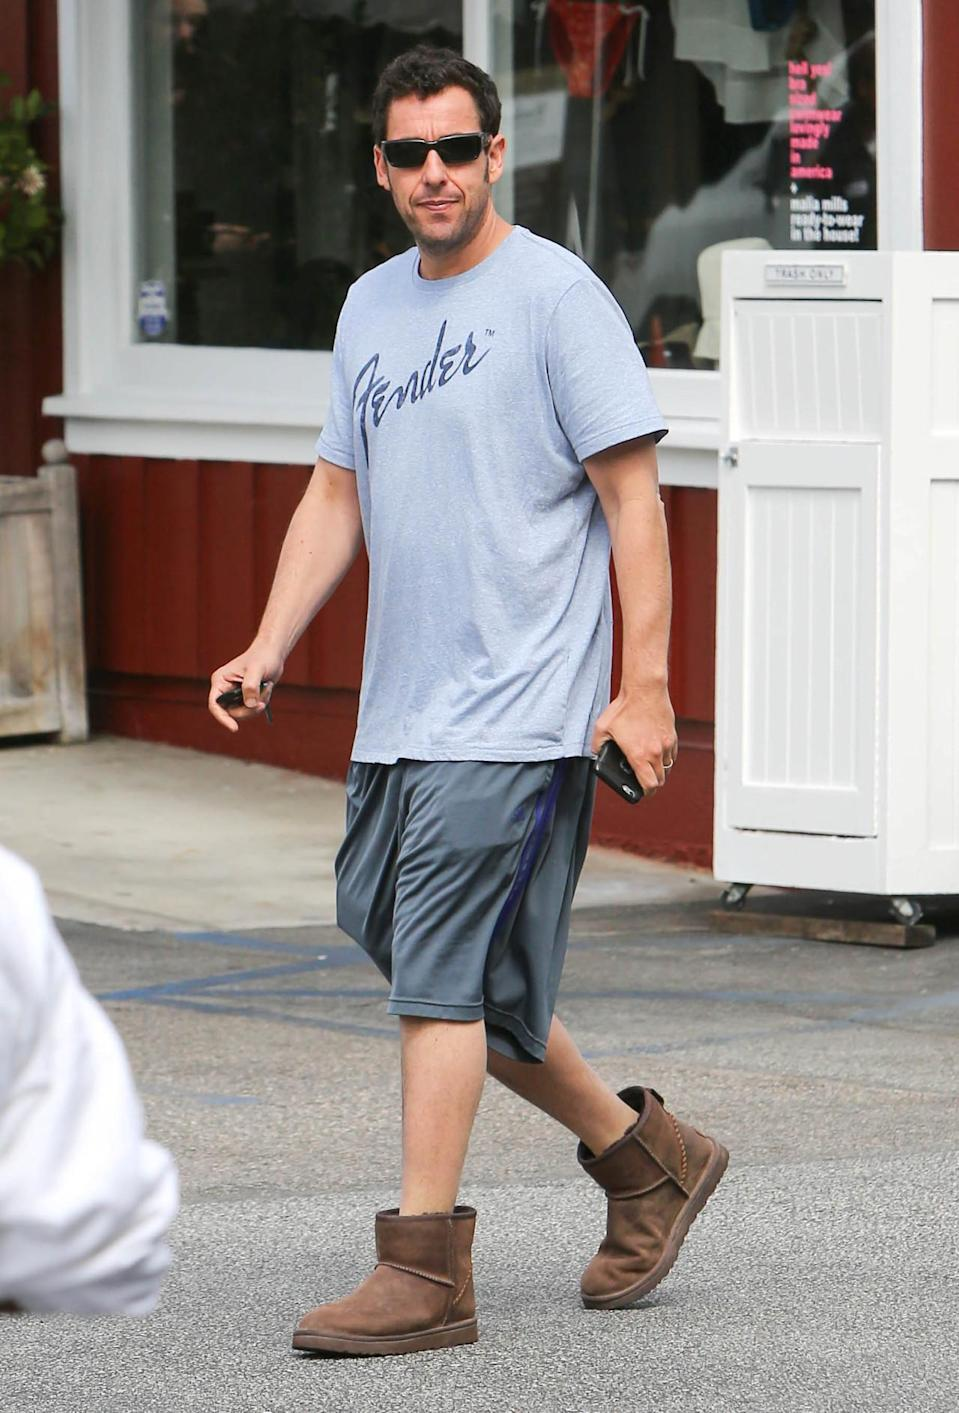 <p>Who can blame Sandler for sporting Uggs? They're like wearing clouds on your feet! (Photo: SMXRF/Star Max/GC Images)</p>